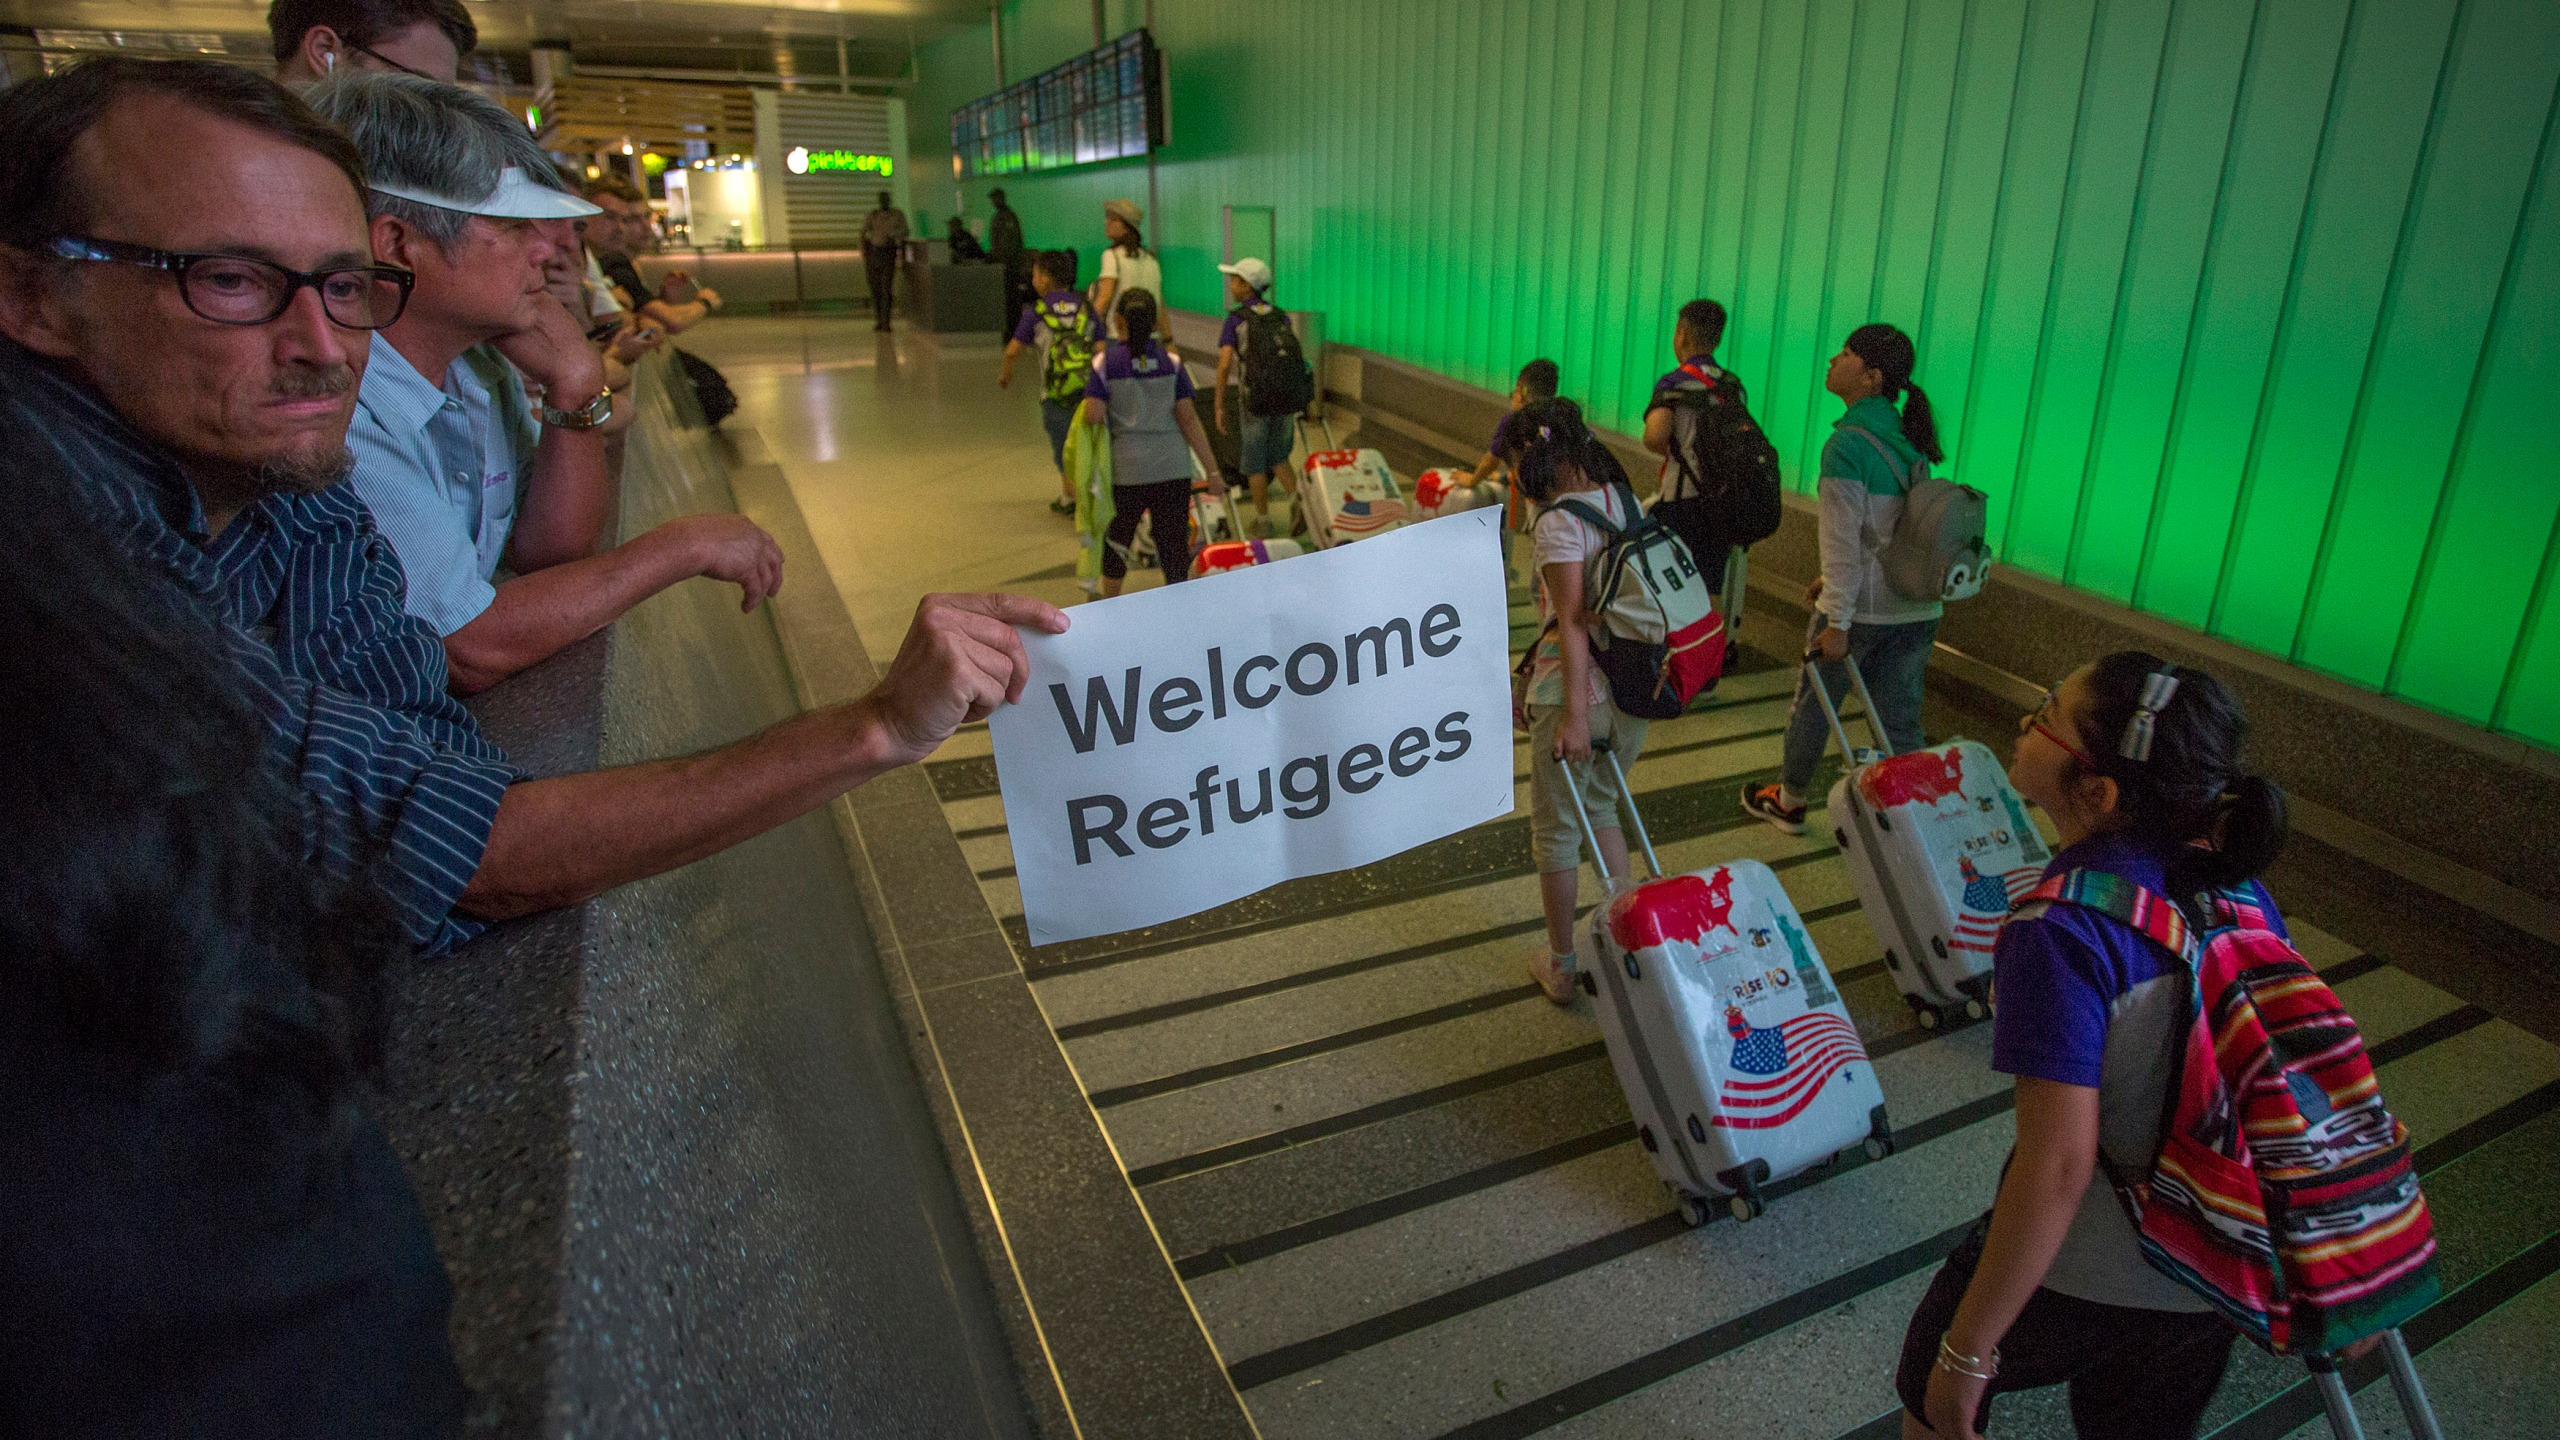 This file photo from June 29, 2017 shows a man carrying a welcome sign as international travelers arrive at LAX on the first day of the the partial reinstatement of the Trump travel ban, temporarily barring travelers from six Muslim-majority nations from entering the U.S. (David McNew/Getty Images)